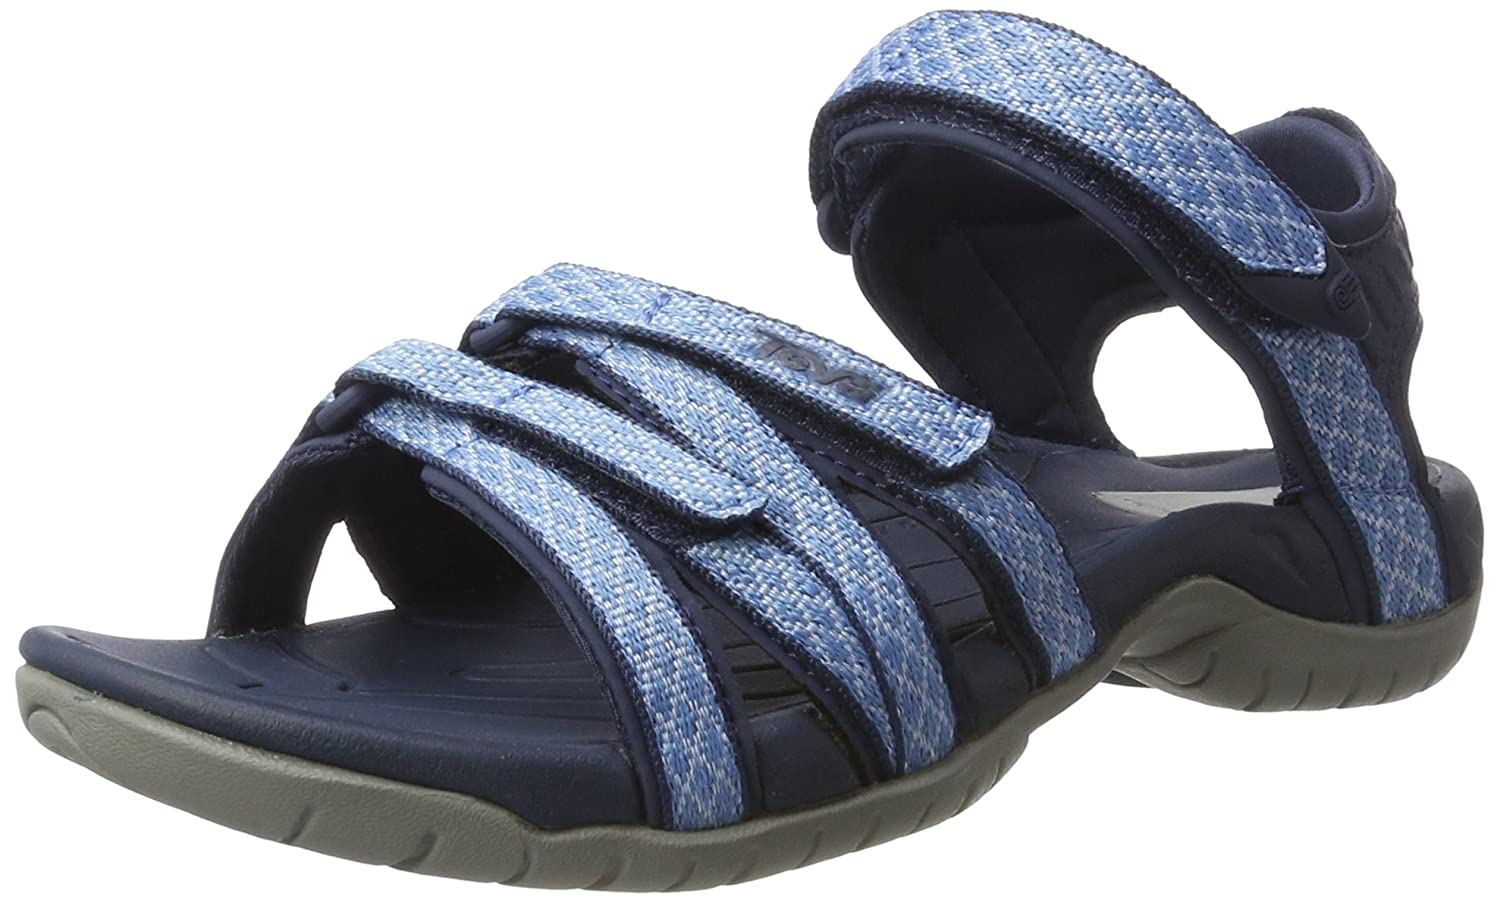 Teva Women's Tirra Athletic Sandal B01IQ6GT18 7 B(M) US|Buena Powder Blue